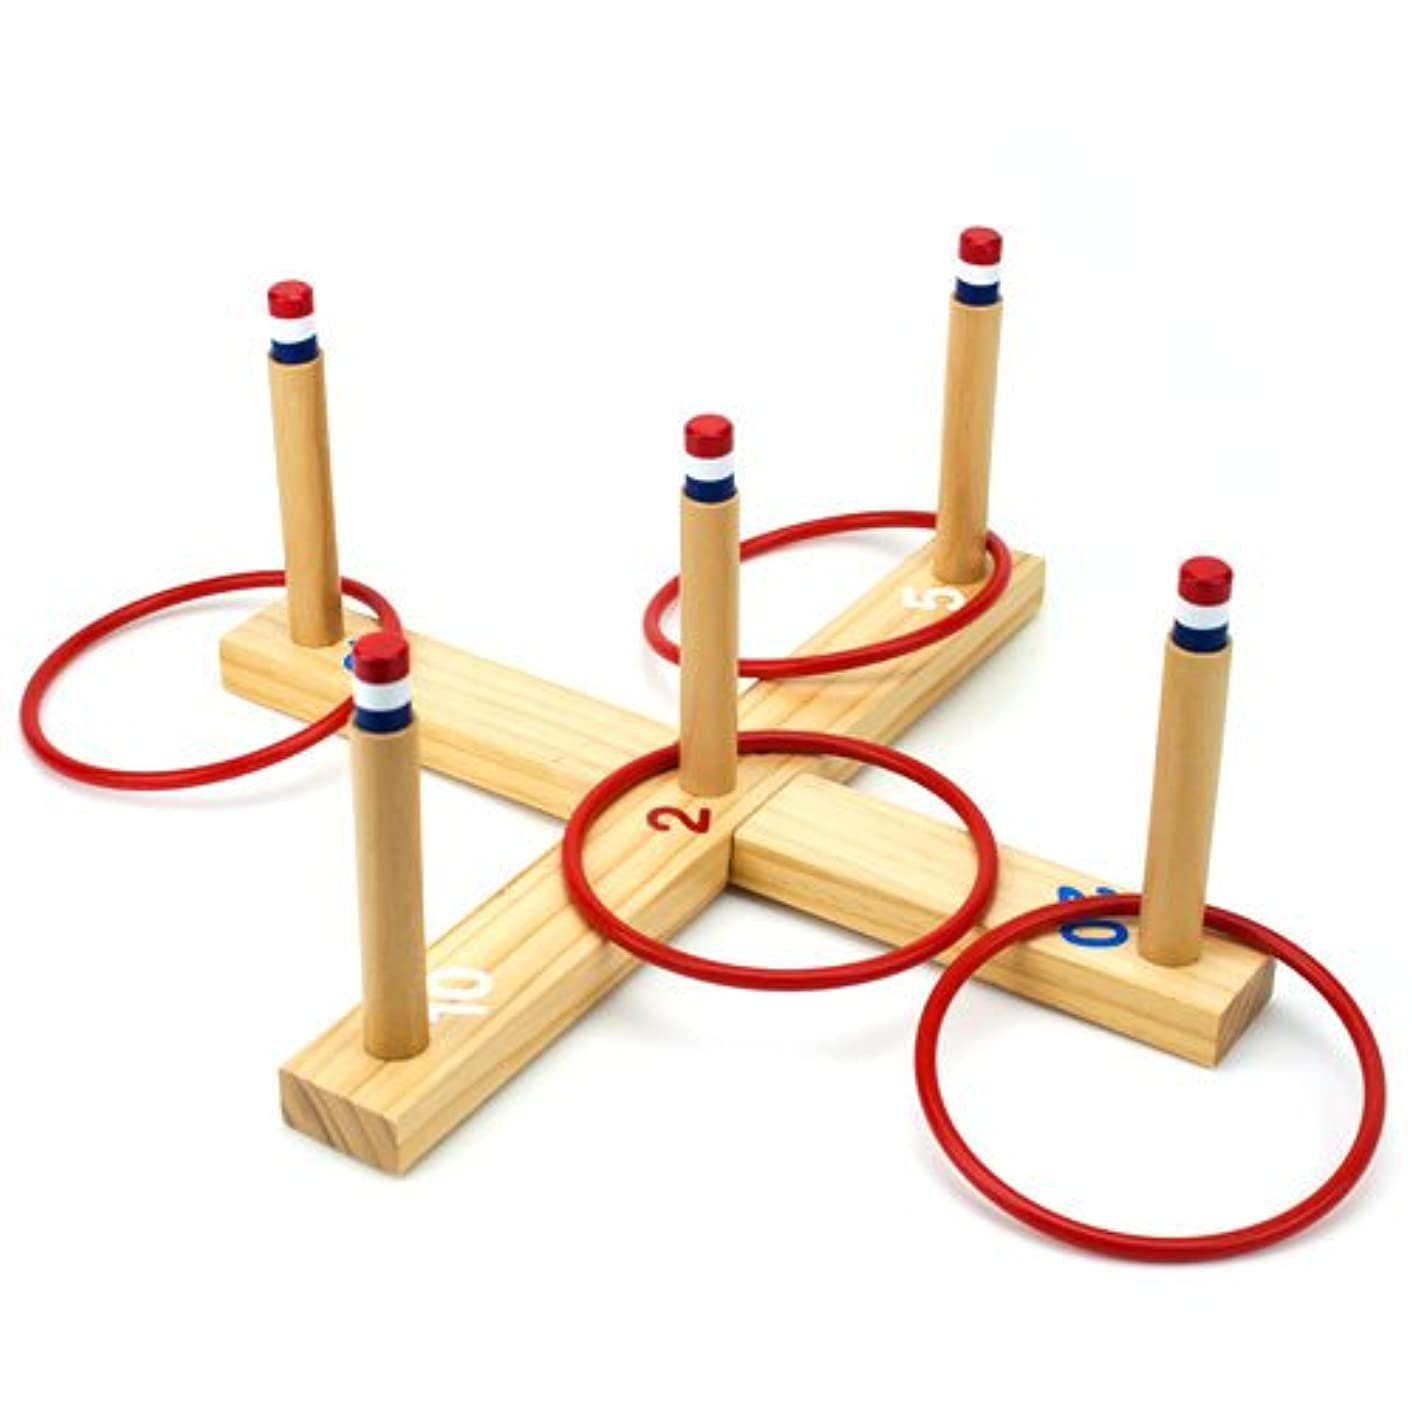 Midway Monsters Ring Toss Game - Classic Wooden Set with 4 Plastic Rings & X-Shaped Board, Indoor & Outdoor Family Fun for Carnivals, Barbecues, & Parties